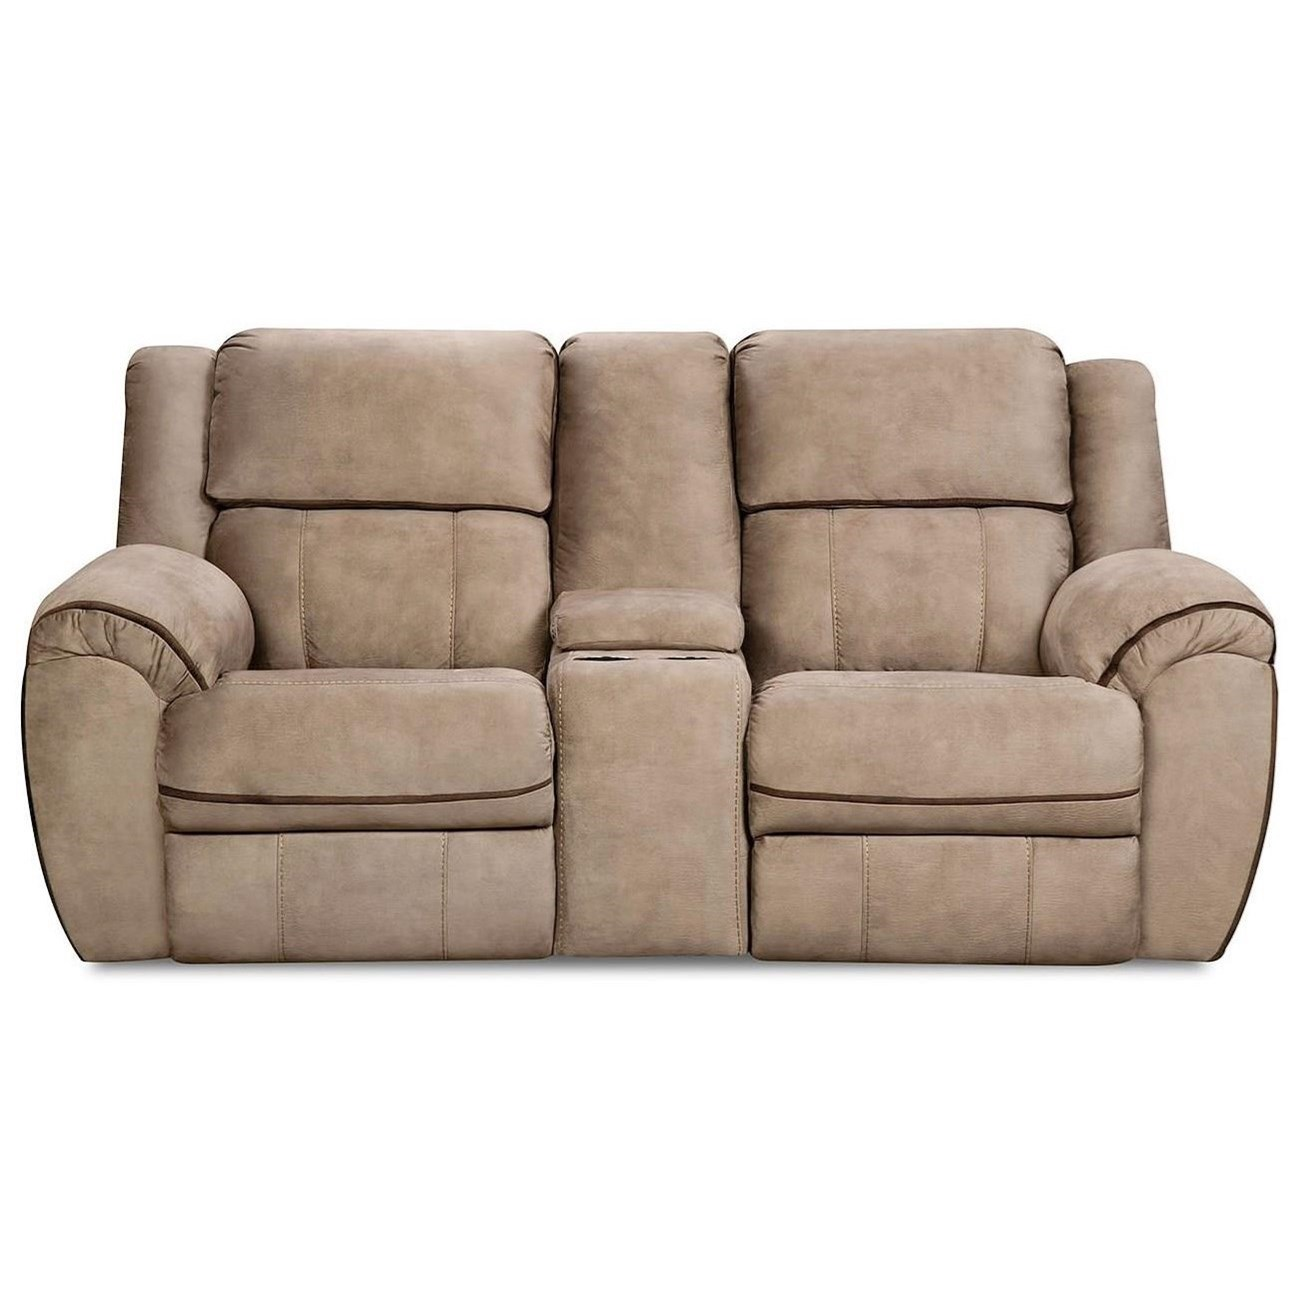 50436BR Power Reclining  Console Loveseat by Simmons Upholstery at O'Dunk & O'Bright Furniture